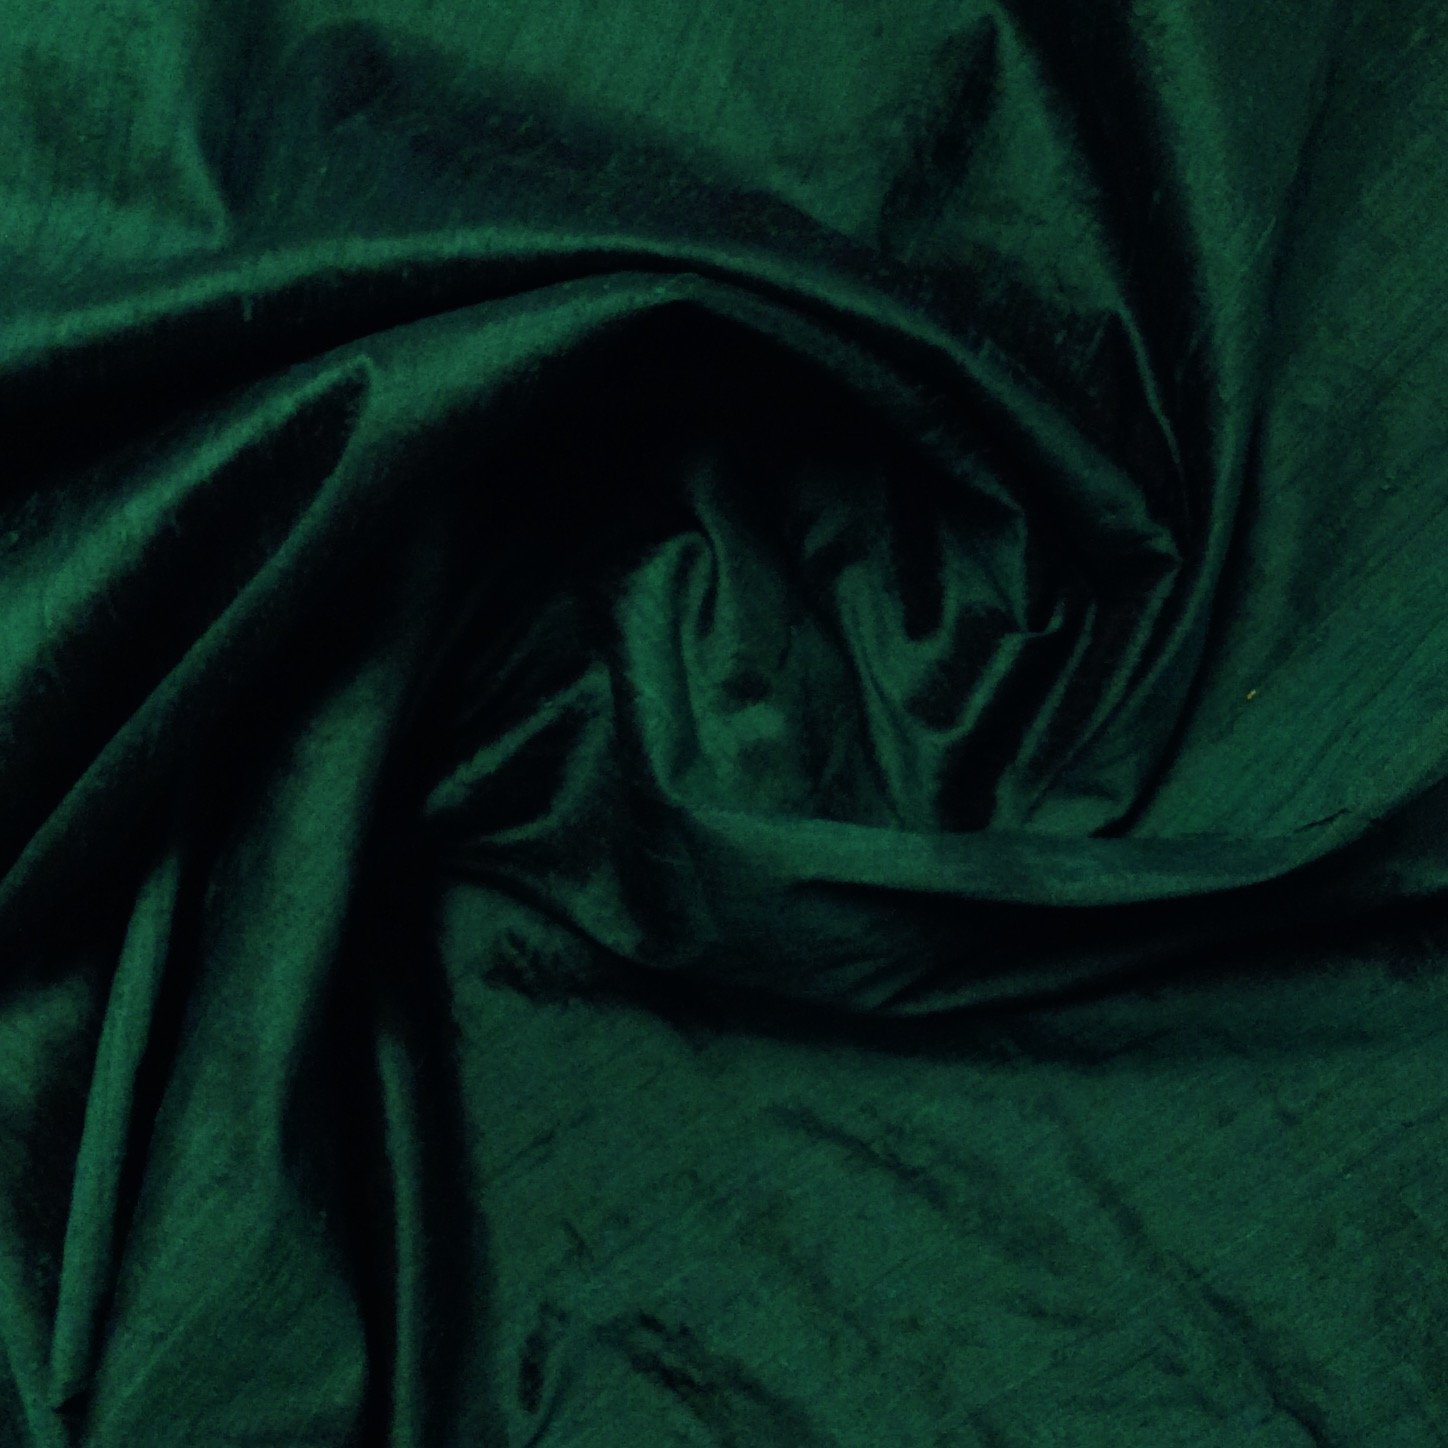 SILK Black Emerald Green Exquisite Hand Woven Dupioni 100% Silk Fabric Drapery By the Yard SH24